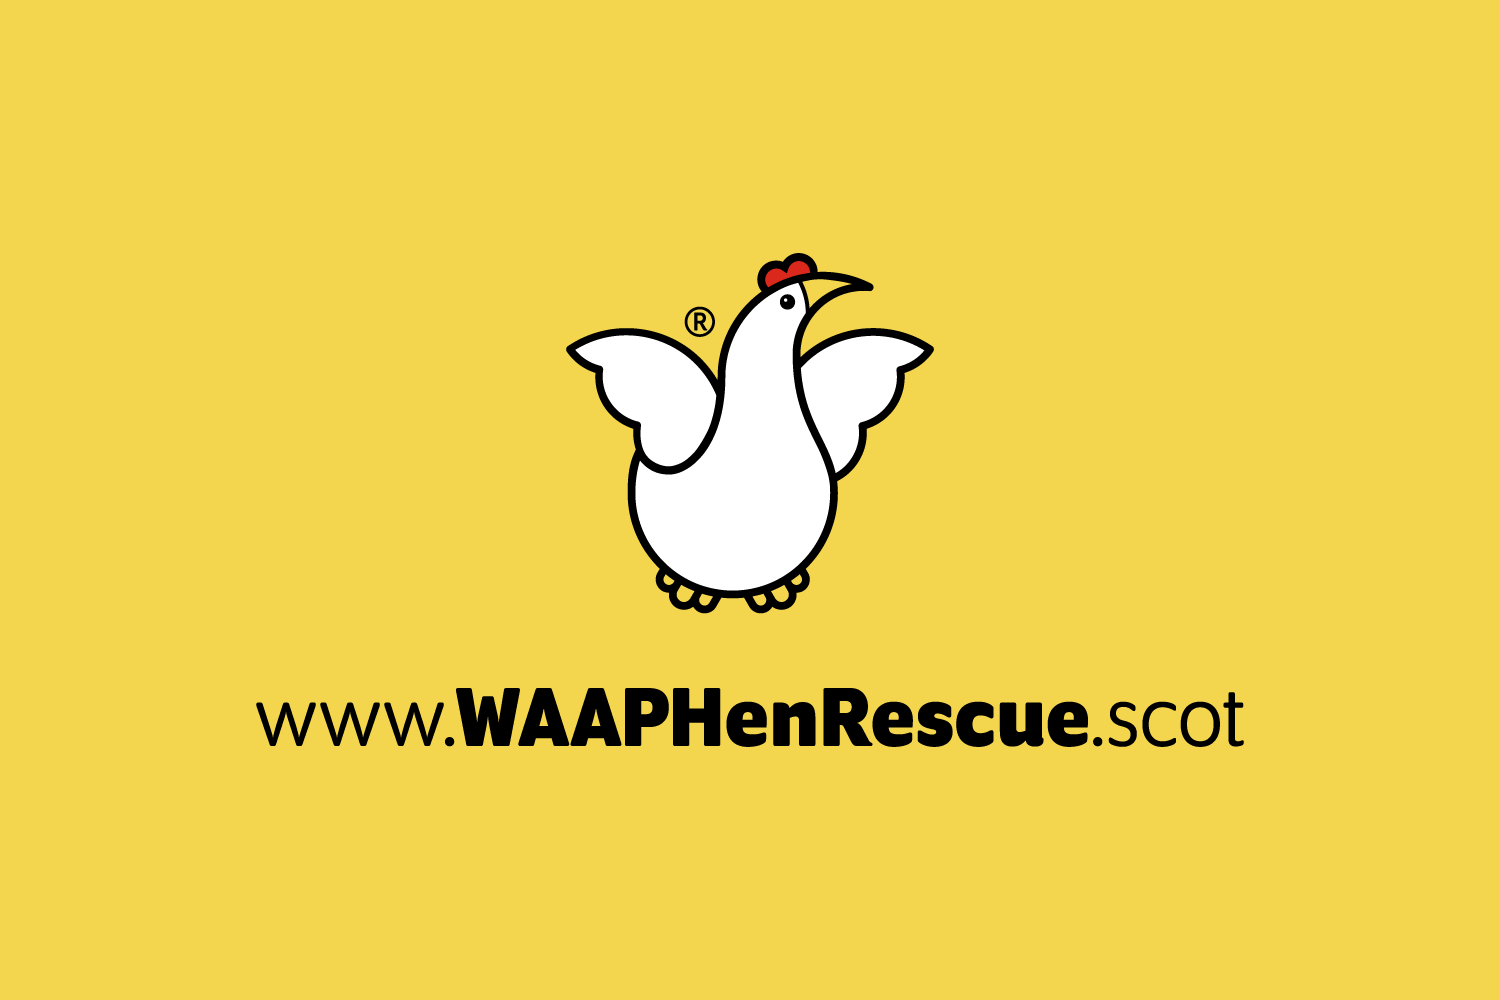 Love Grids® Brand Identity Design for WAAP Hen Rescue. Stuart Cockburn © 2019